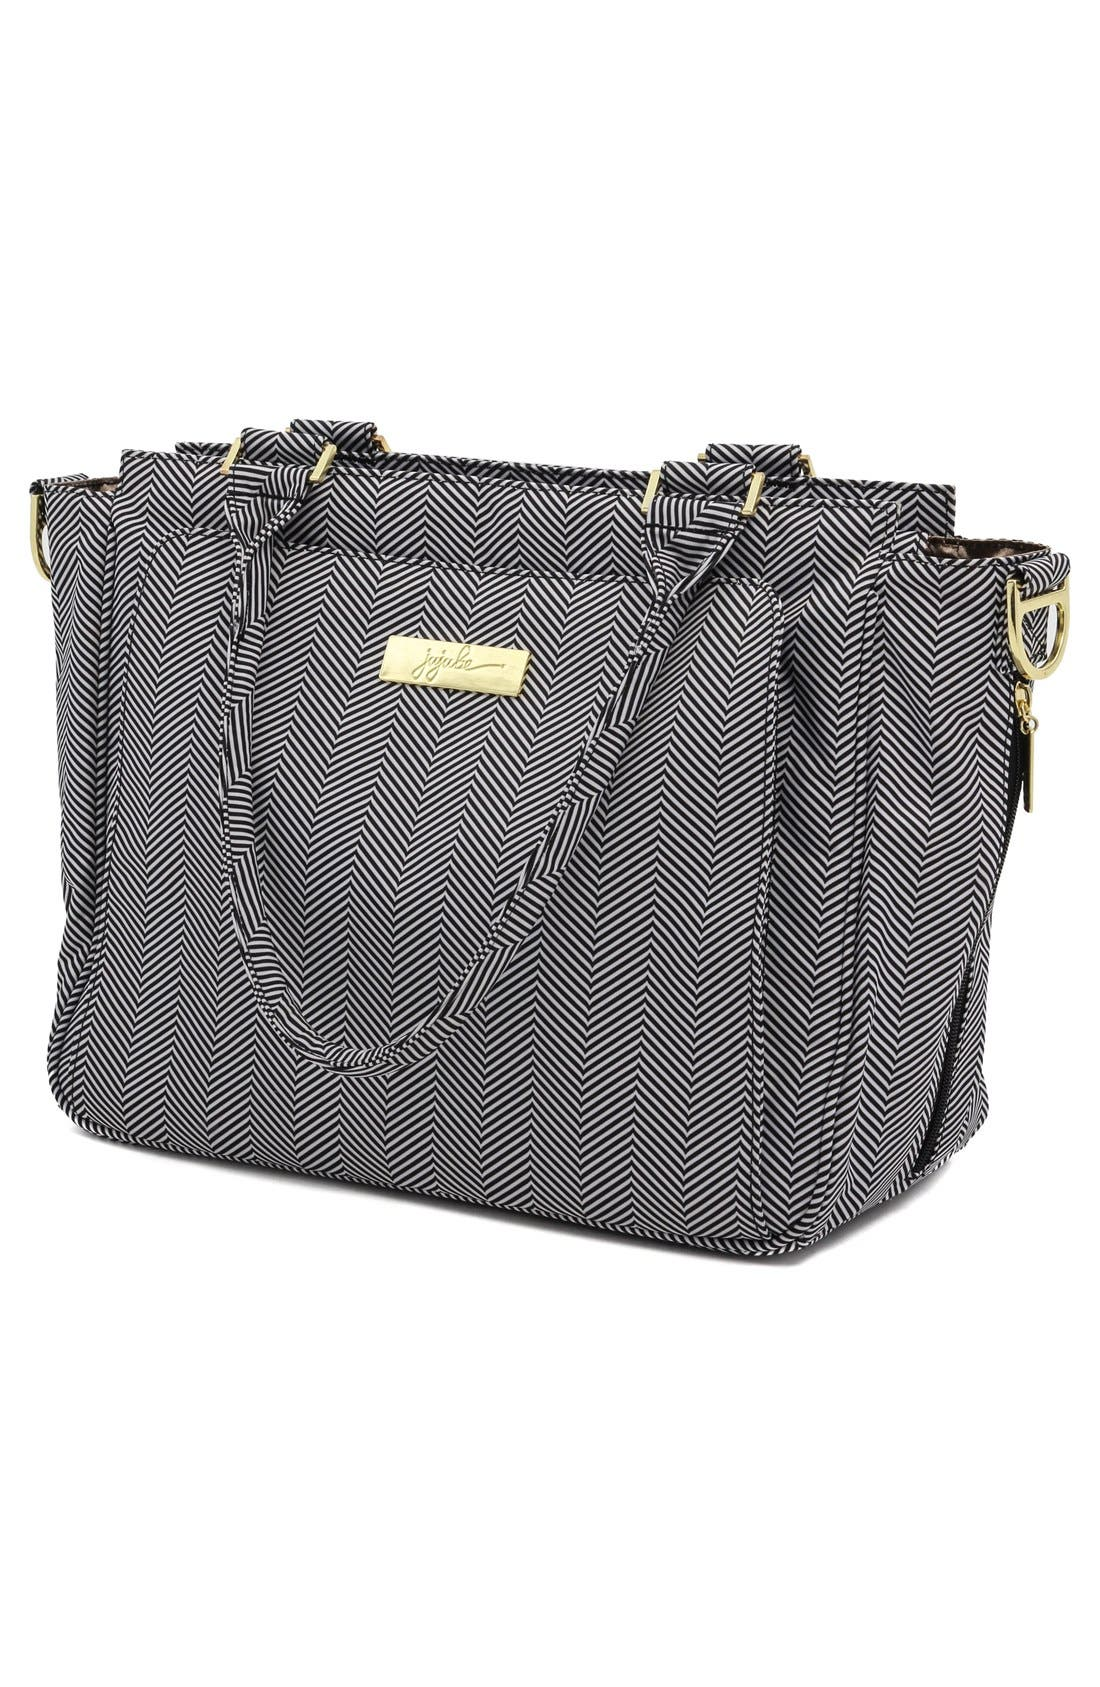 'Be Classy' Messenger Diaper Bag,                             Alternate thumbnail 3, color,                             The Queen Of The Nile